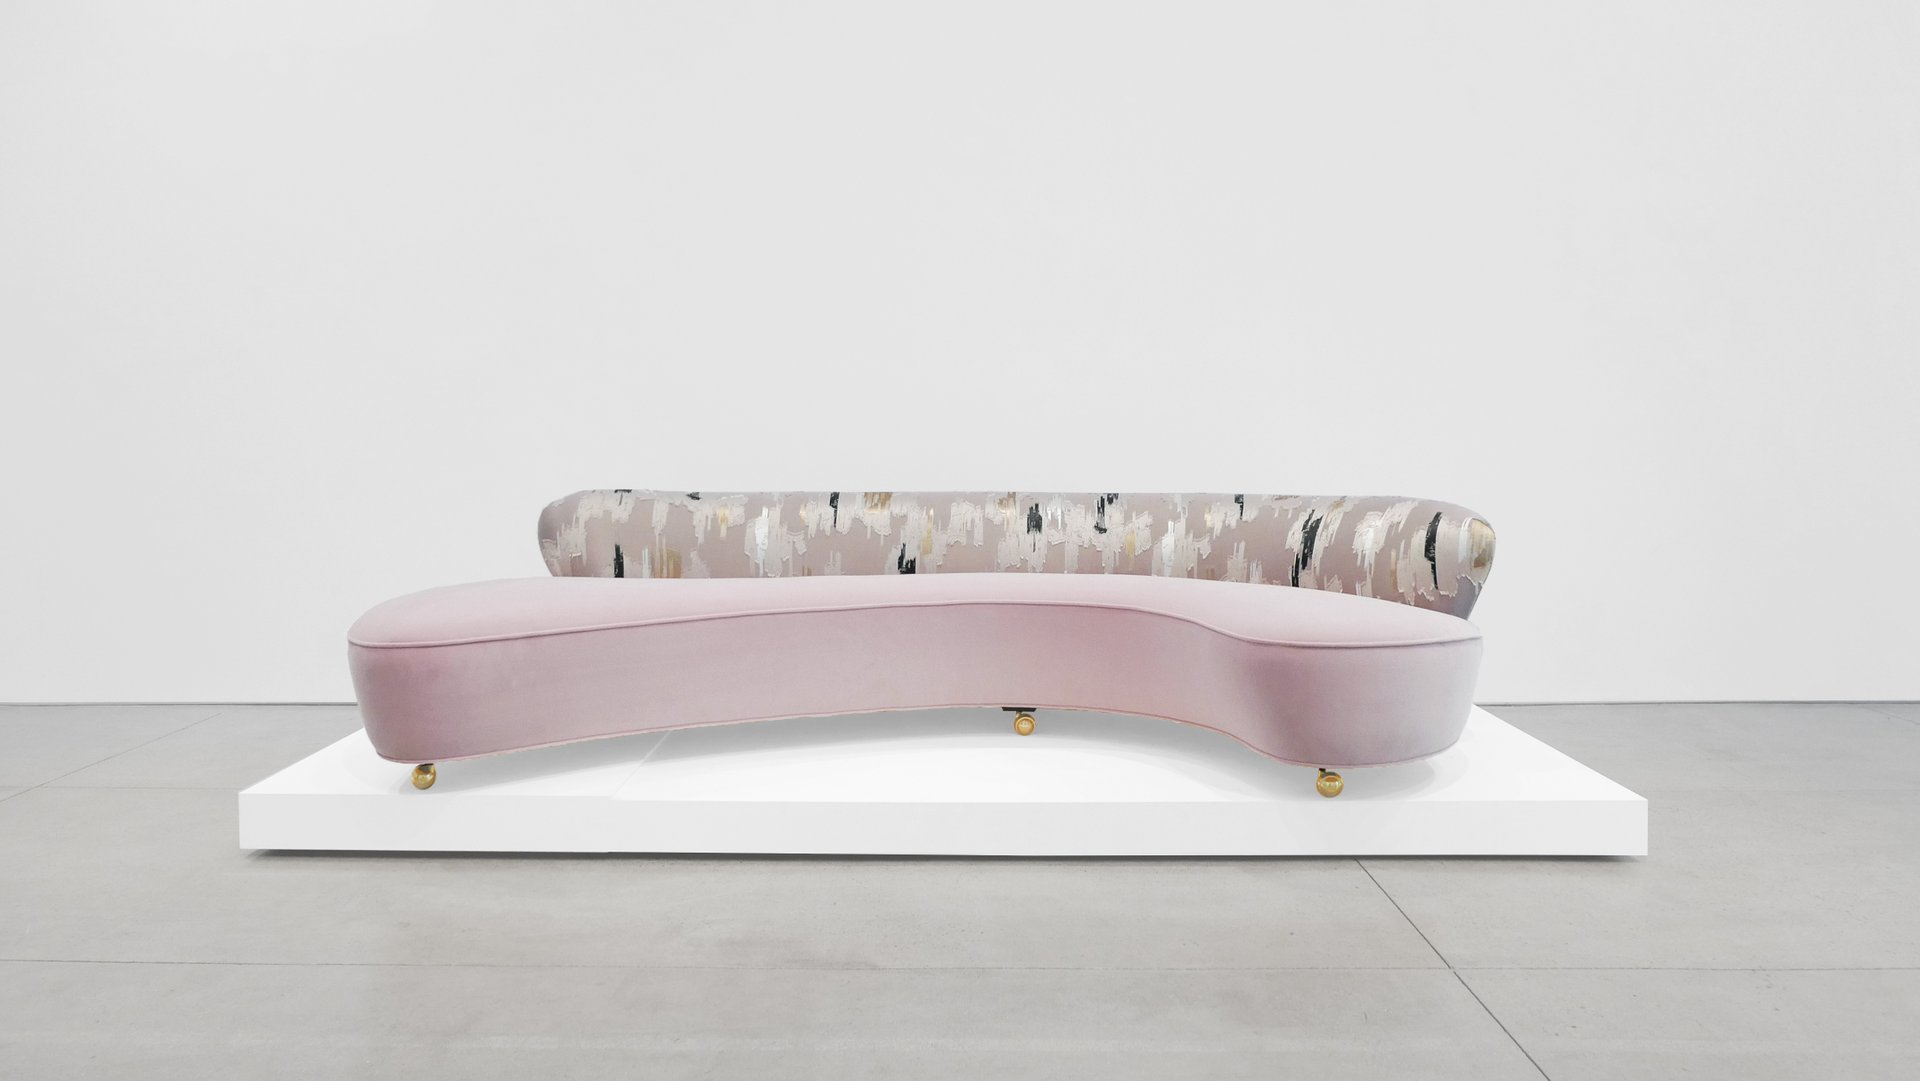 Serpentine Sofa By Vladimir Kagan 1950s For Sale At Pamono